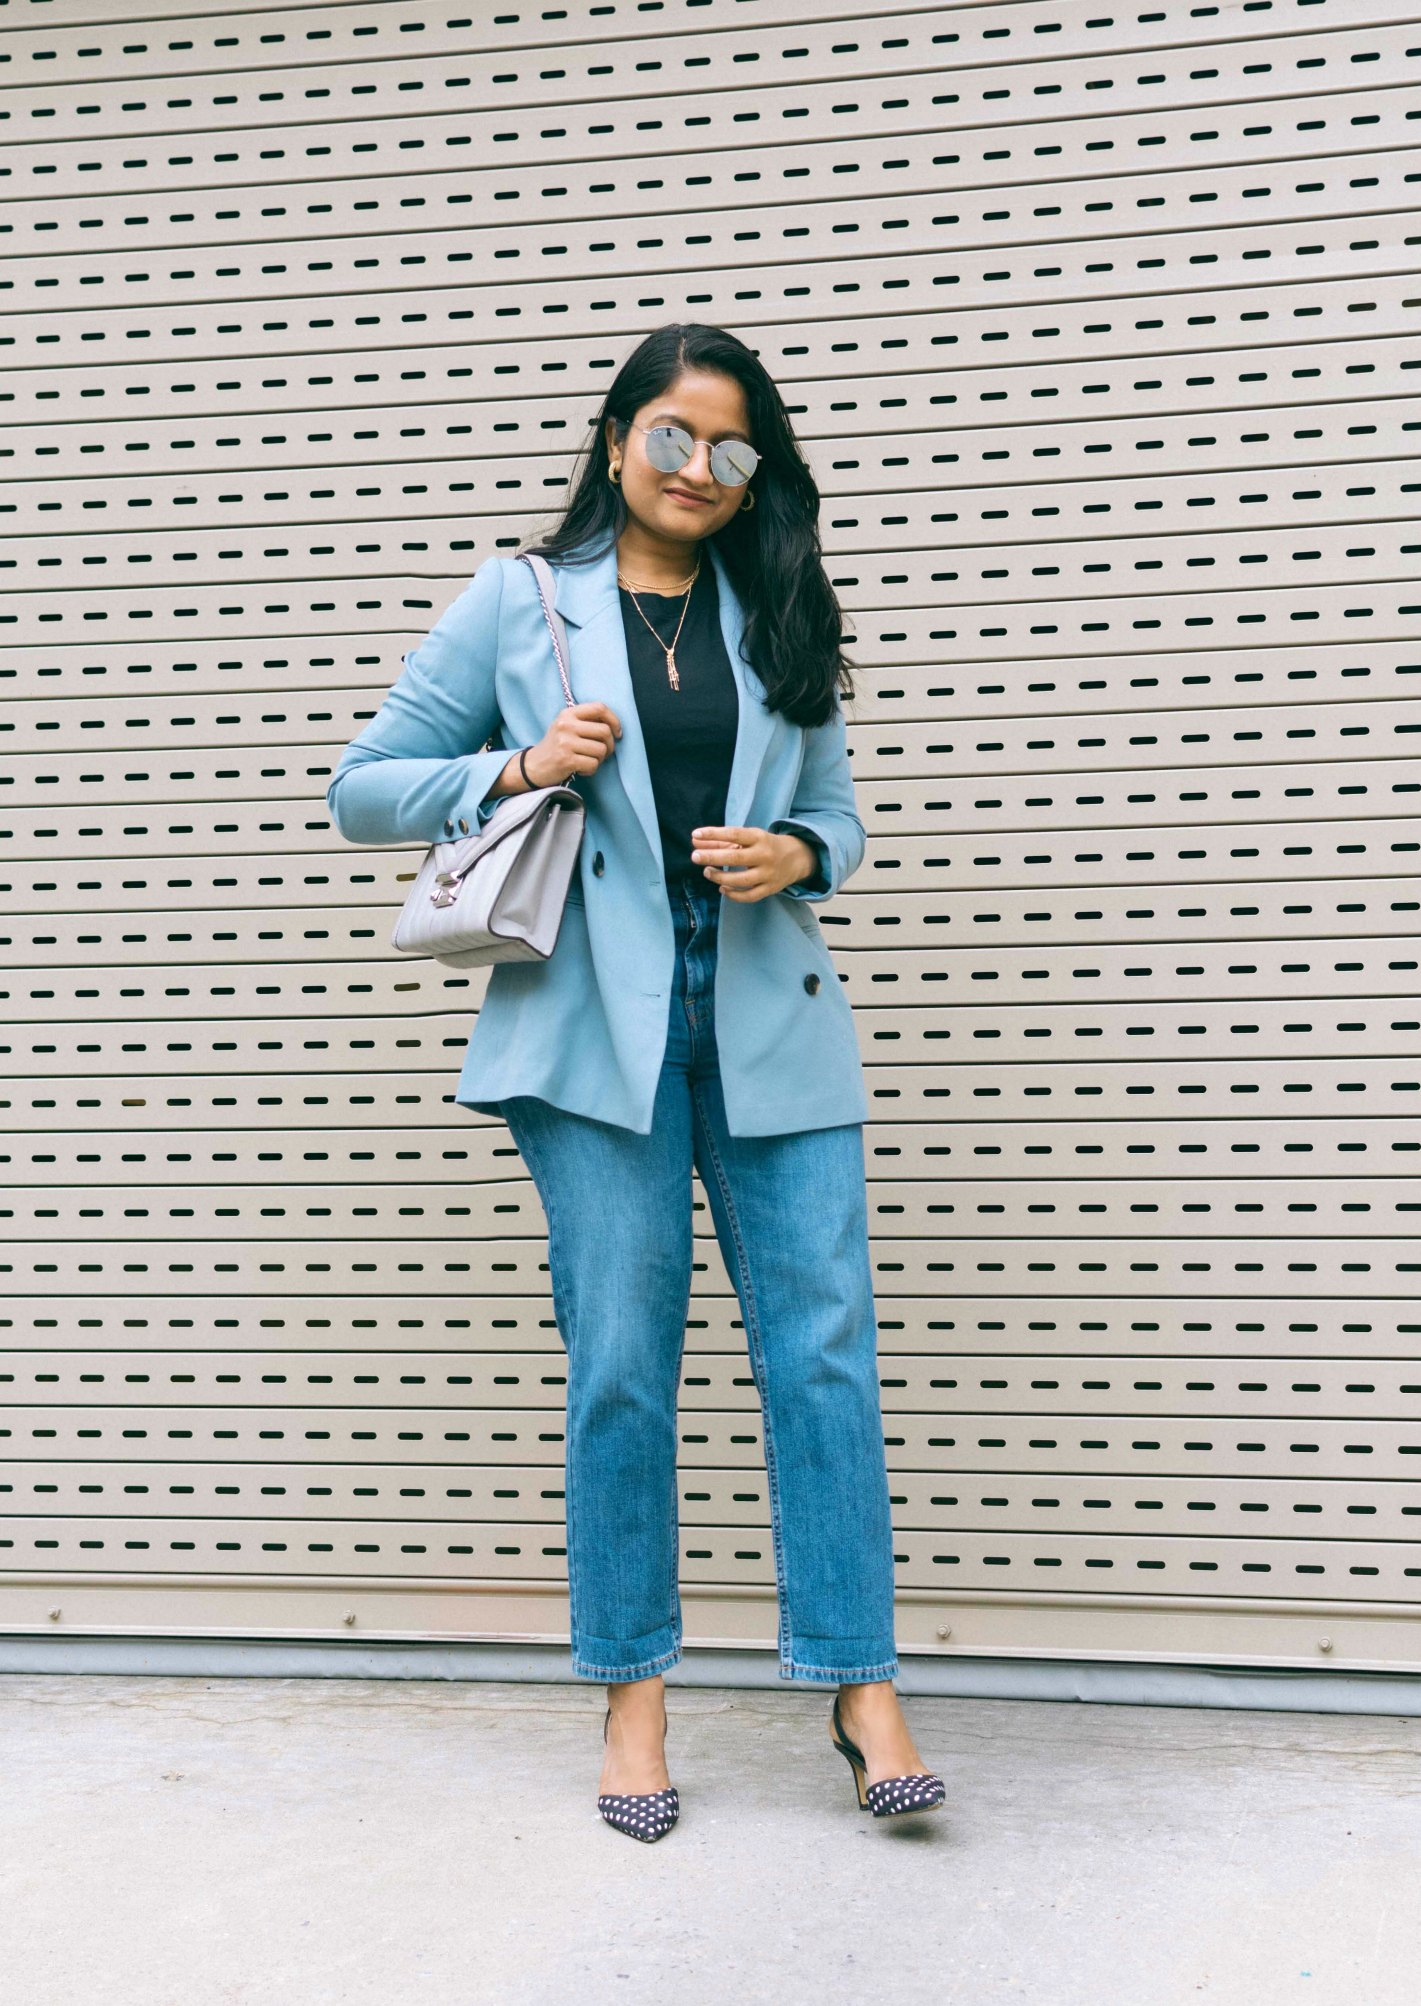 wearing Everlane summer jeans, The Cotton Box-Cut Tee, MICHAEL Michael Kors Whitney Quilted Leather Shoulder Bag, Kerry Polka Dot pumps, baby blue blazer 2